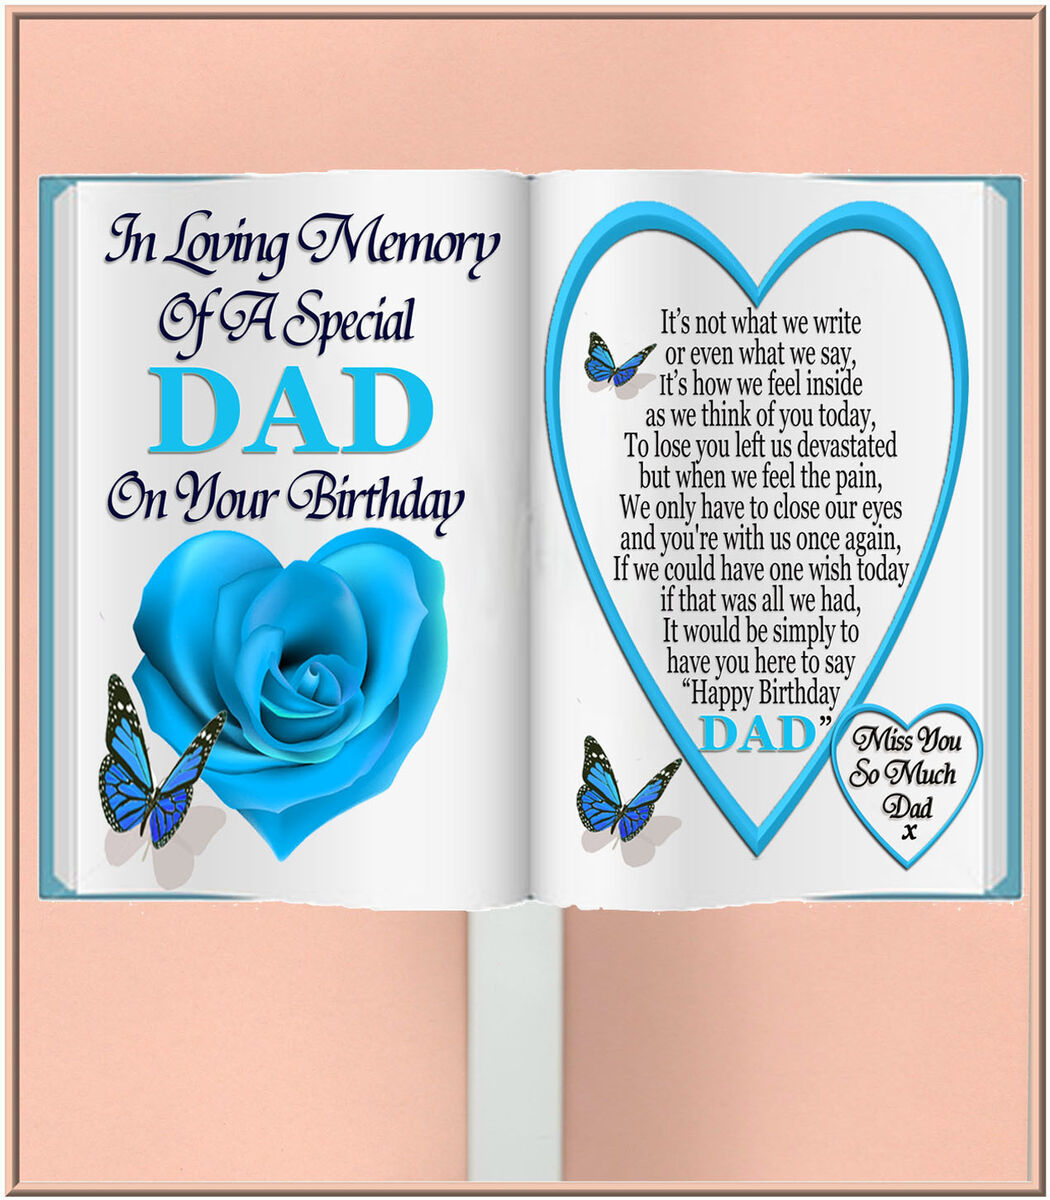 Special Dad Birthday Book Shaped Memorial Card Holder